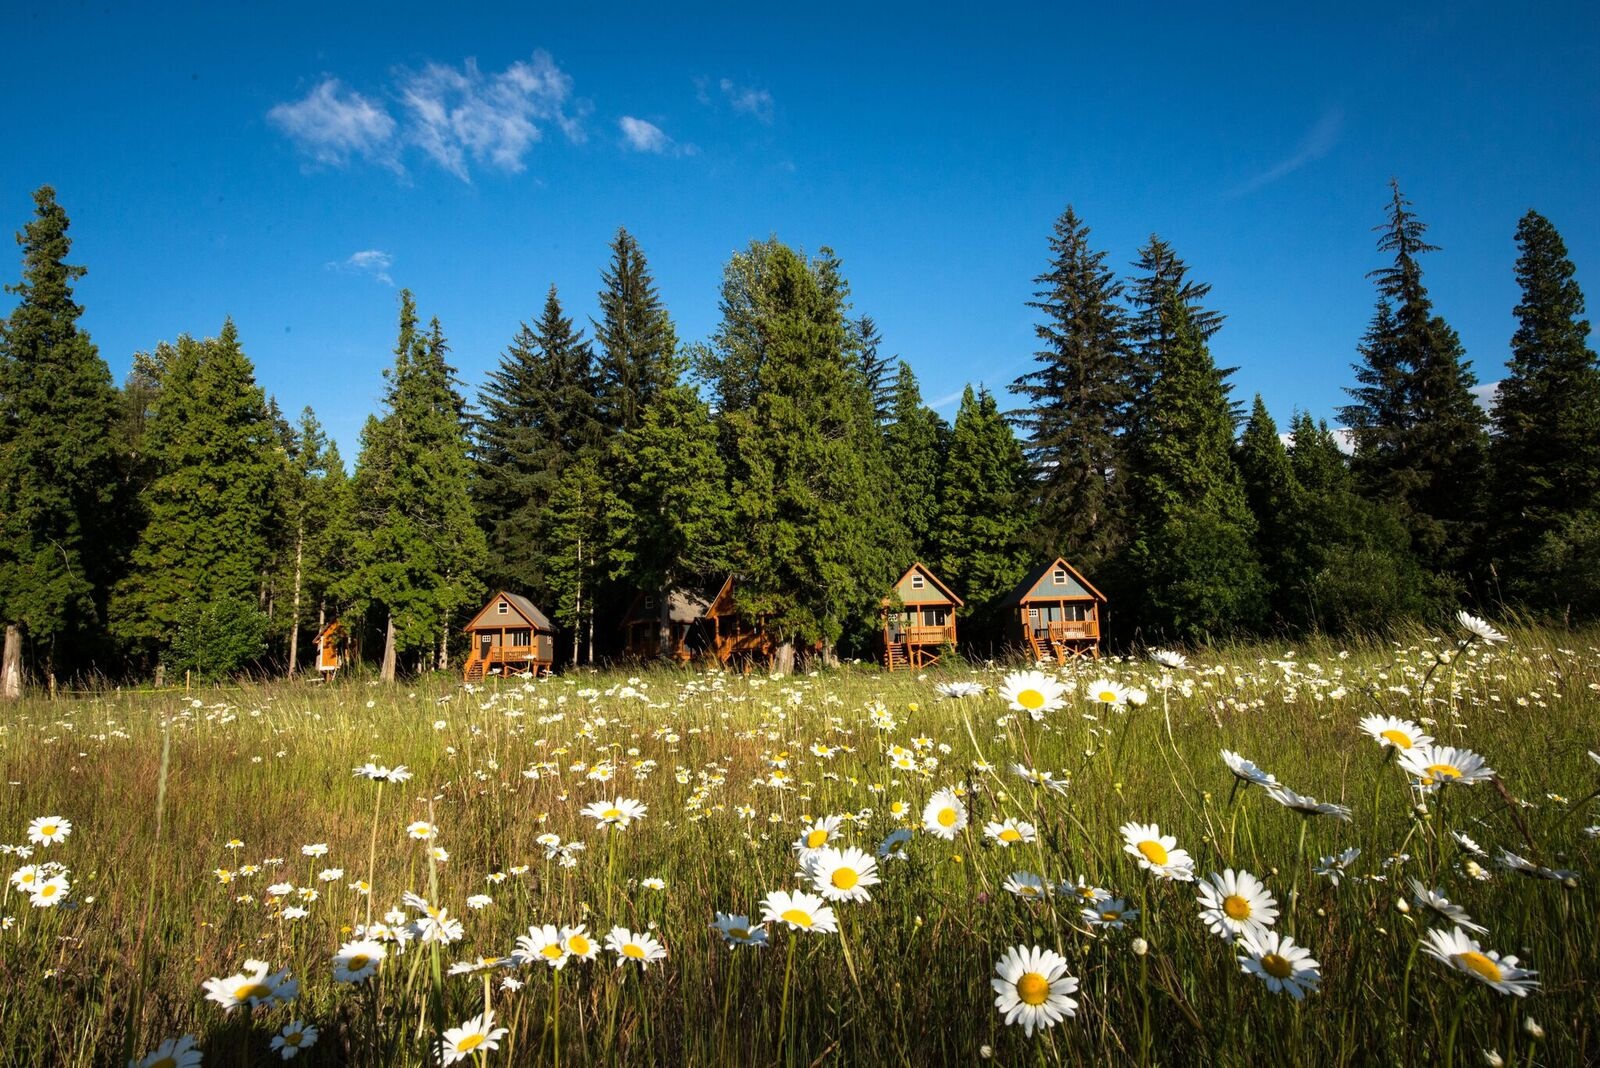 Daisies & Cabins